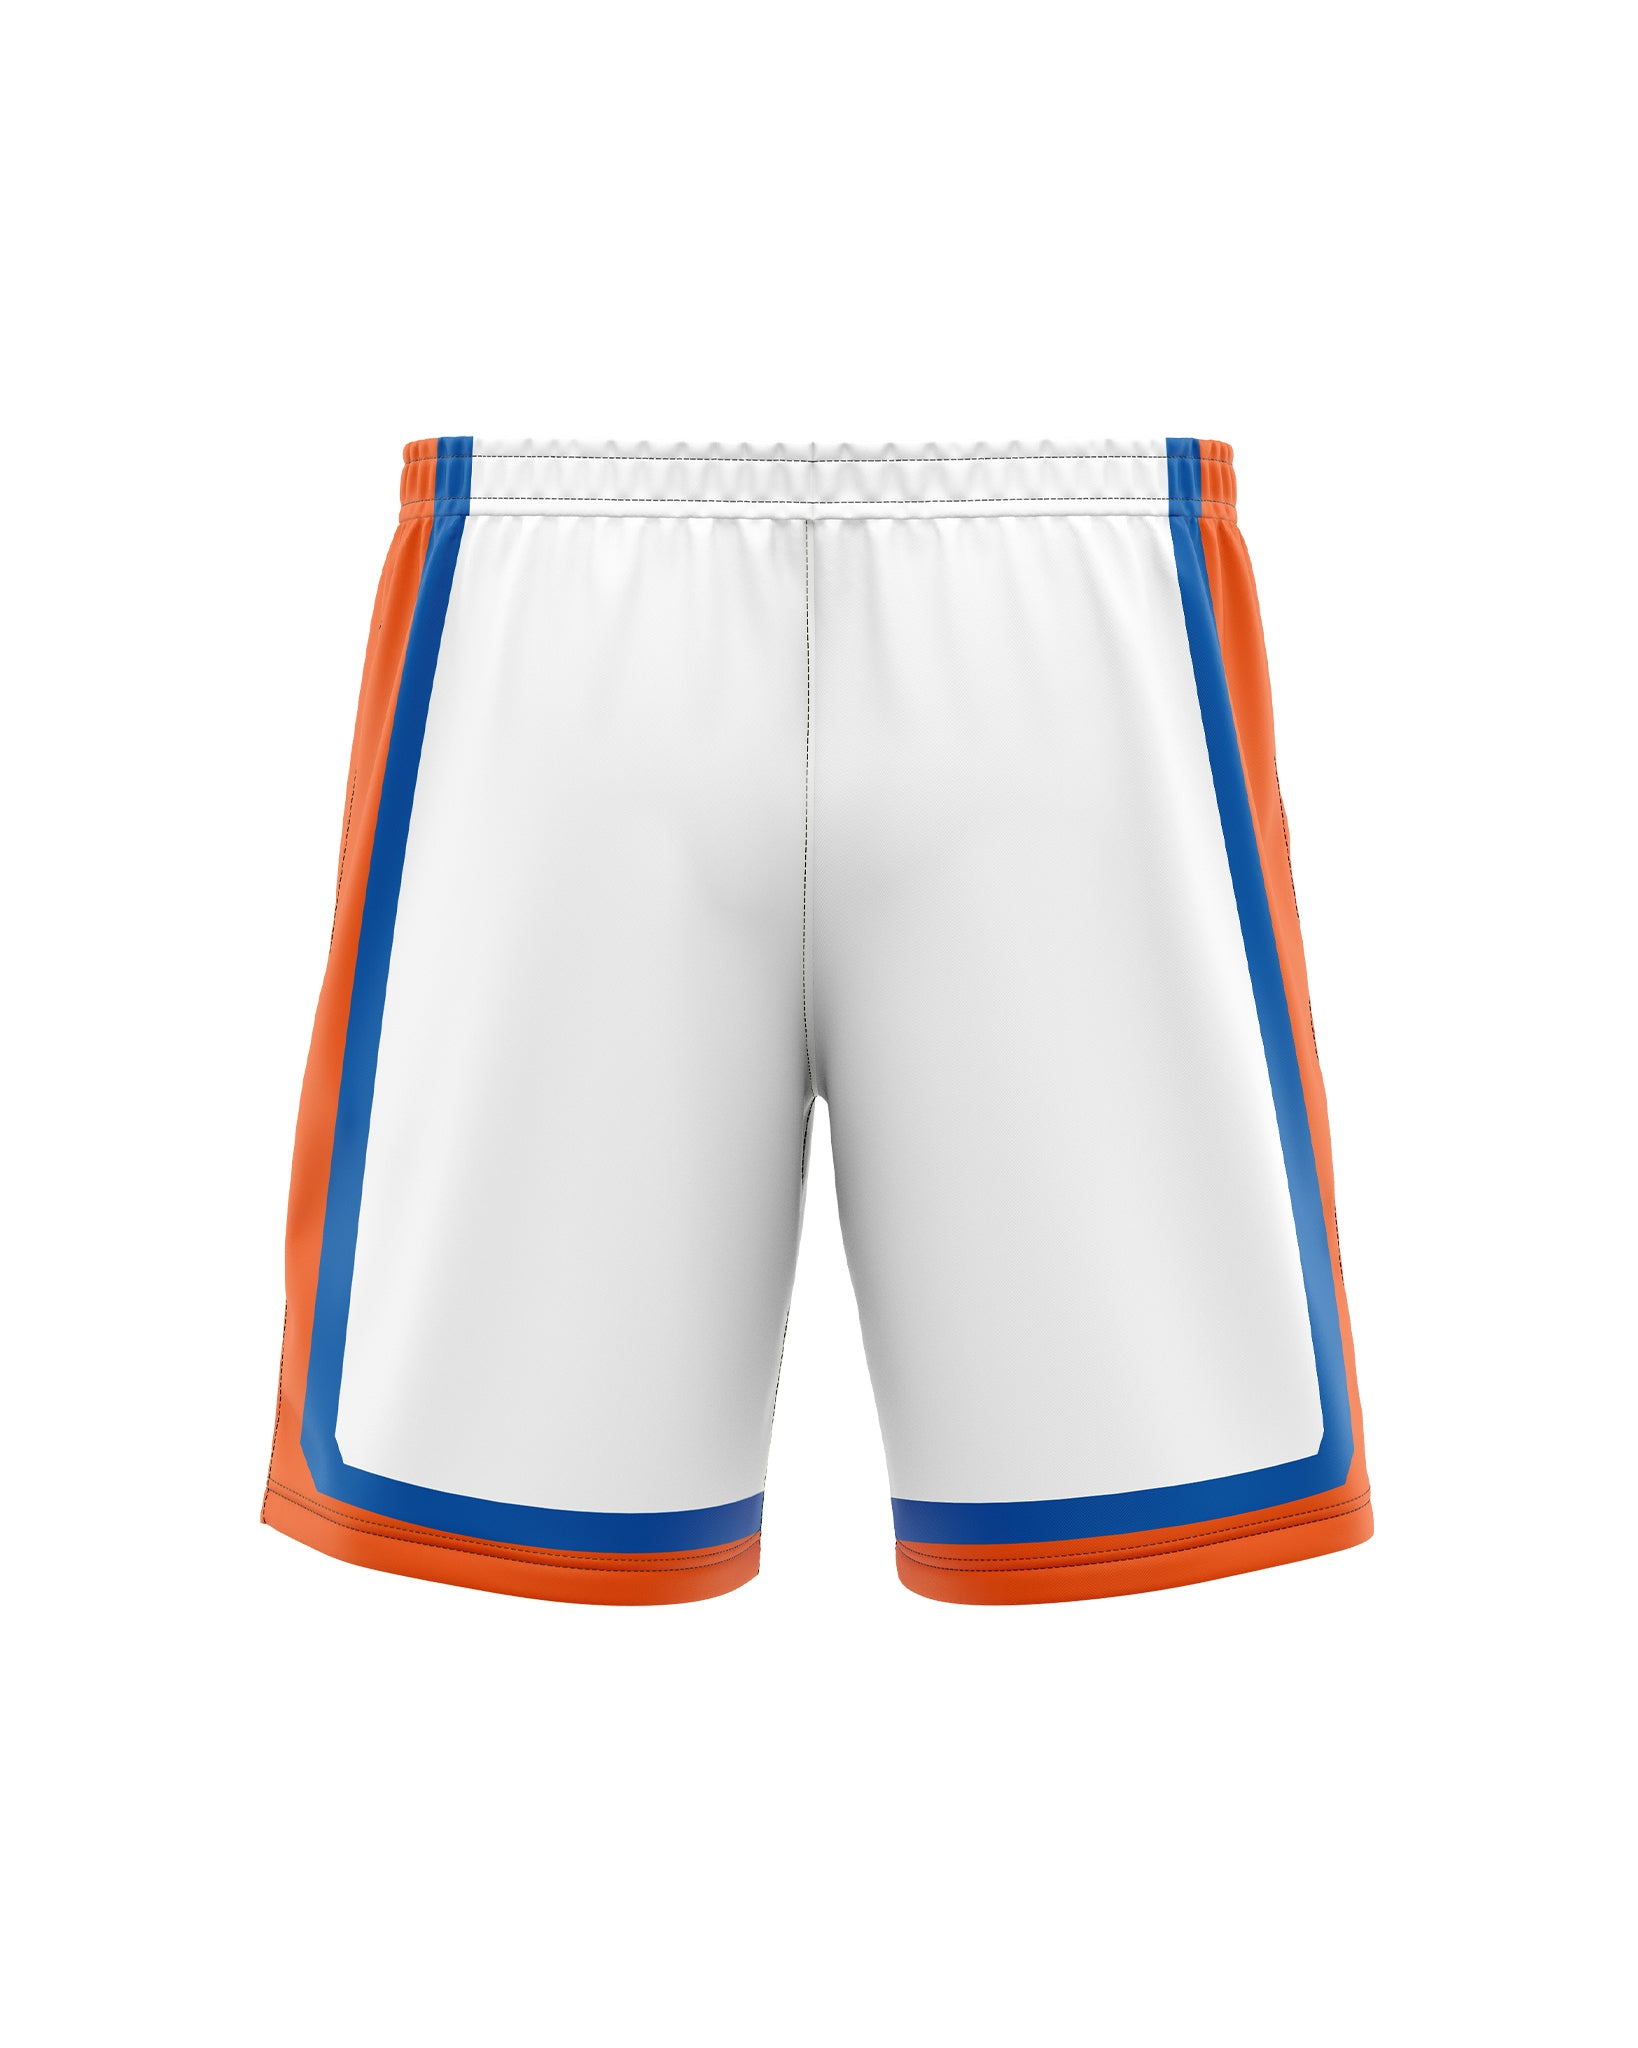 Big Apple Shorts - Mens